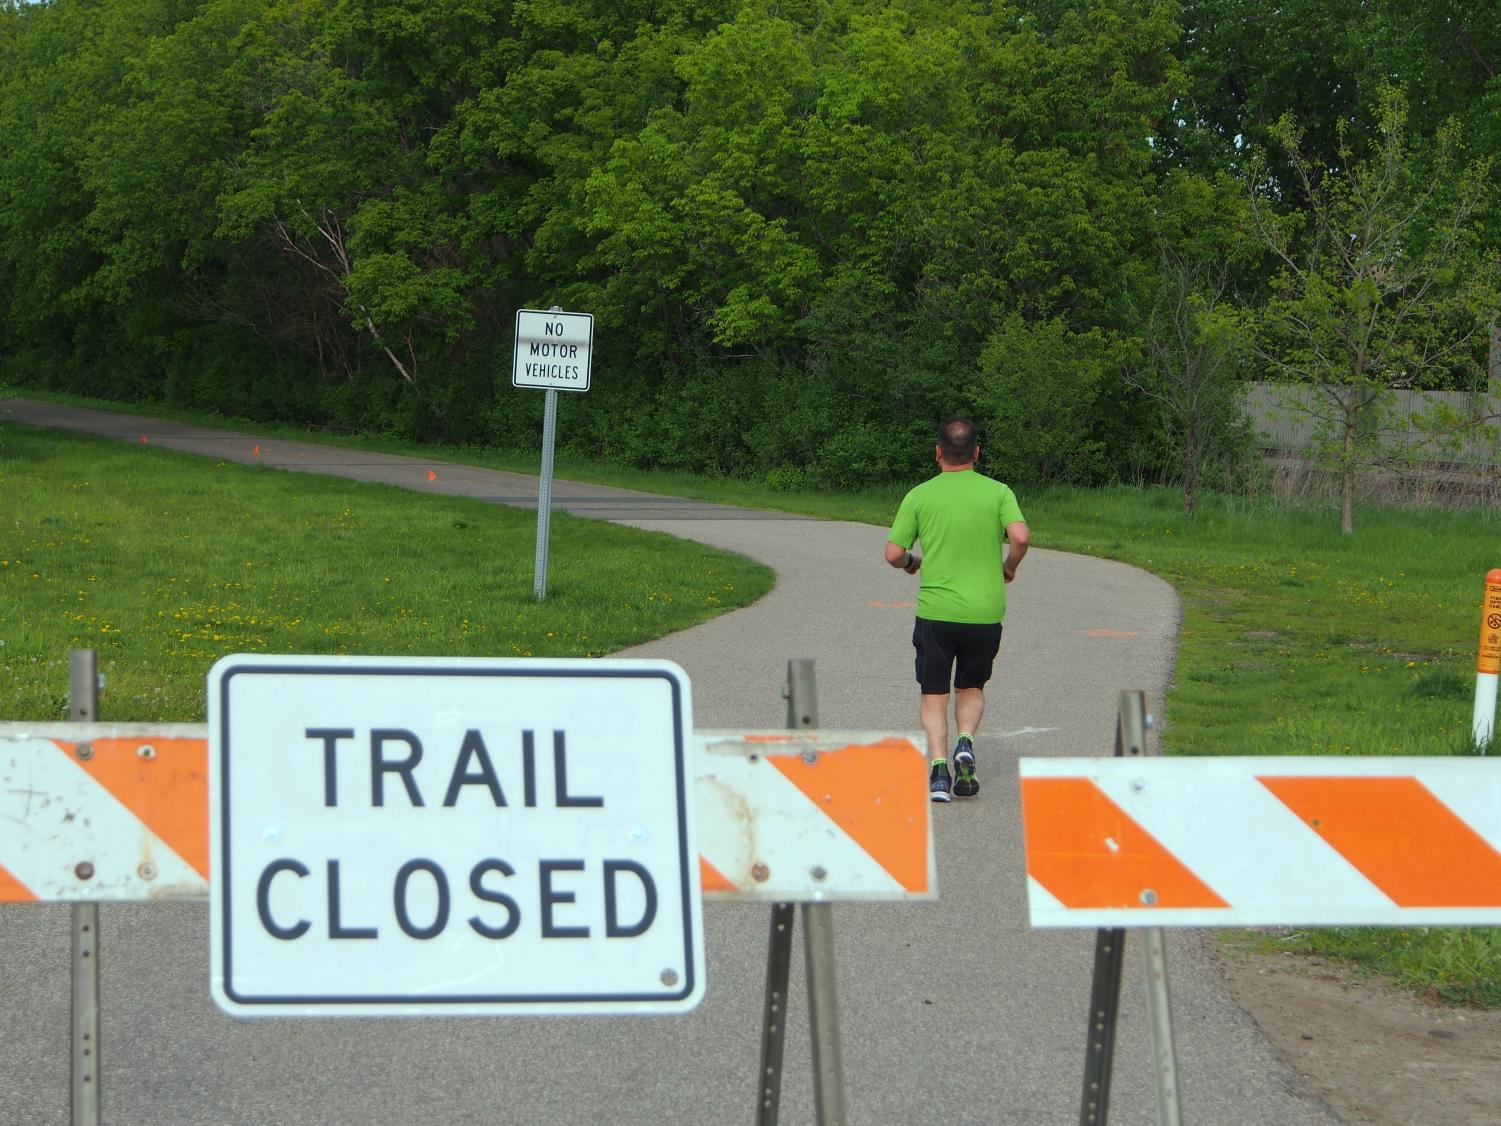 Cedar Lake Trail will be closed from Excelsior Boulevard to France Avenue until 2021 for the Southwest Lightrail Transit construction, according to Twin Cities Pioneer Press. Other trails, including parts of the Kenilworth Trail and the Midtown Greenway, will also be closed.